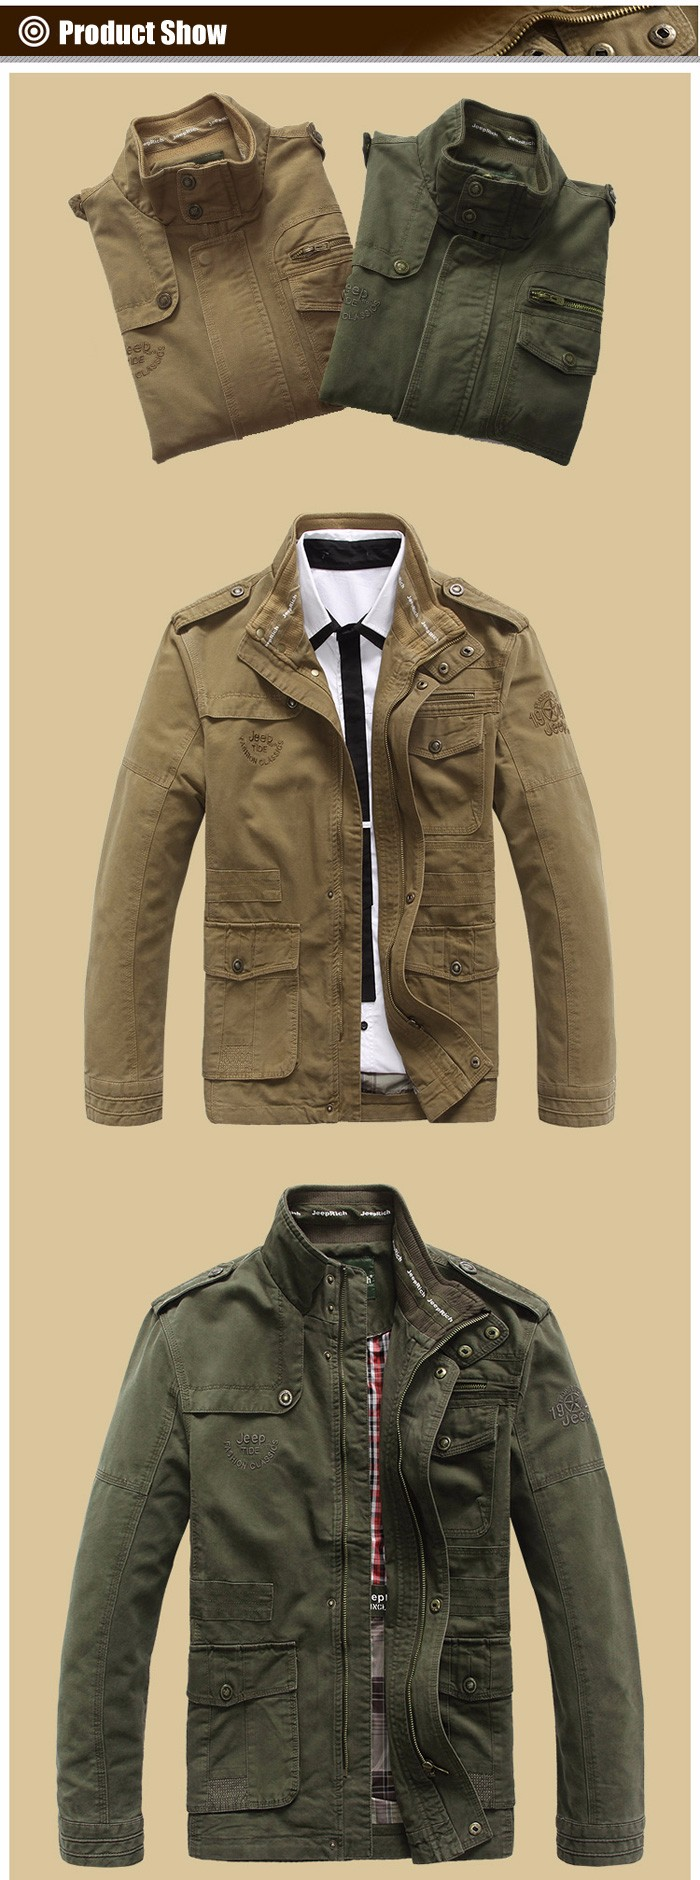 Jeep Rich Patched Stand-up Collar Jacket Cotton Men Wind Coat